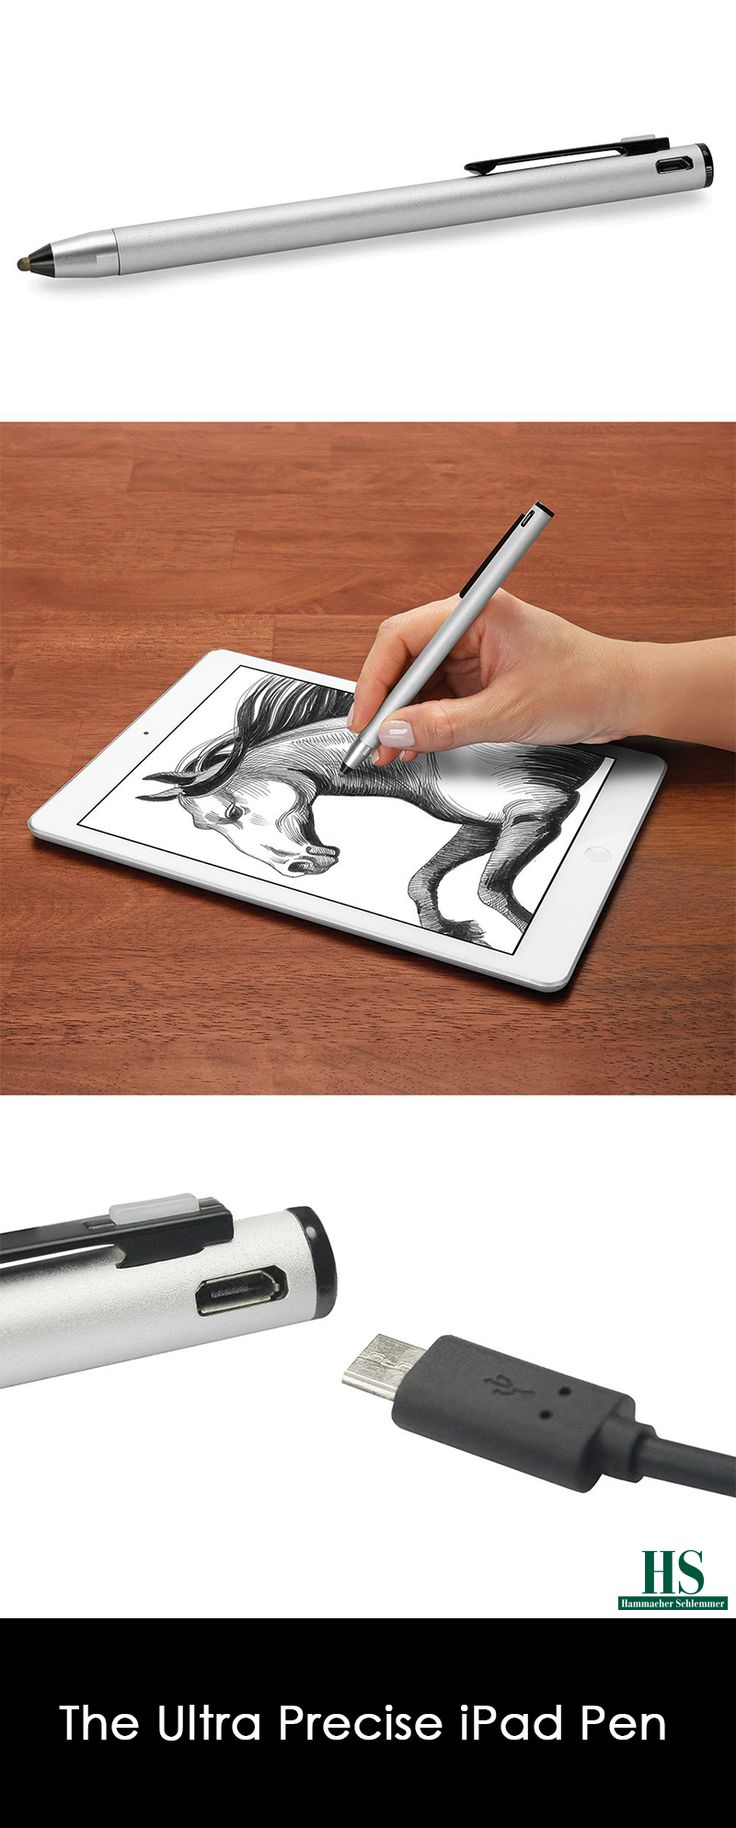 This is the stylus that provides enhanced precision and control while drawing or writing on all Apple iPad and iPad Pro models. It employs advanced circuitry in combination with a replaceable 2.8 mm conductive PET tip that flexes and glides across a tablet, enabling pointillist detail while drafting or doodling. Comparable in size and feel to its ink-filled cousins, the pen is ideal for outlining a sketch or crafting legible notes.